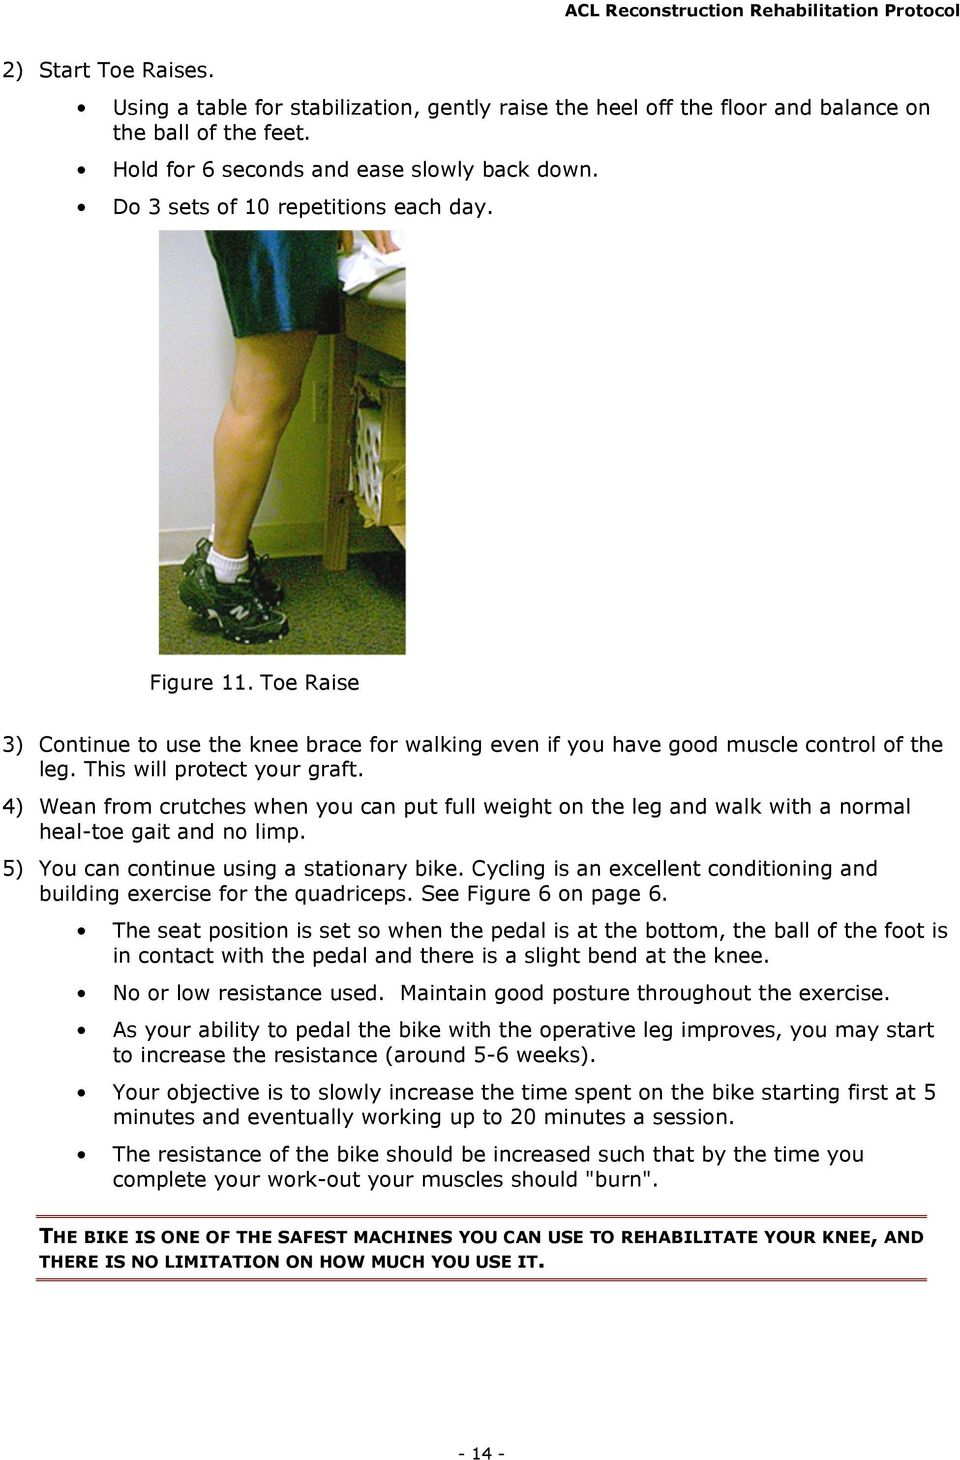 4) Wean from crutches when you can put full weight on the leg and walk with a normal heal-toe gait and no limp. 5) You can continue using a stationary bike.